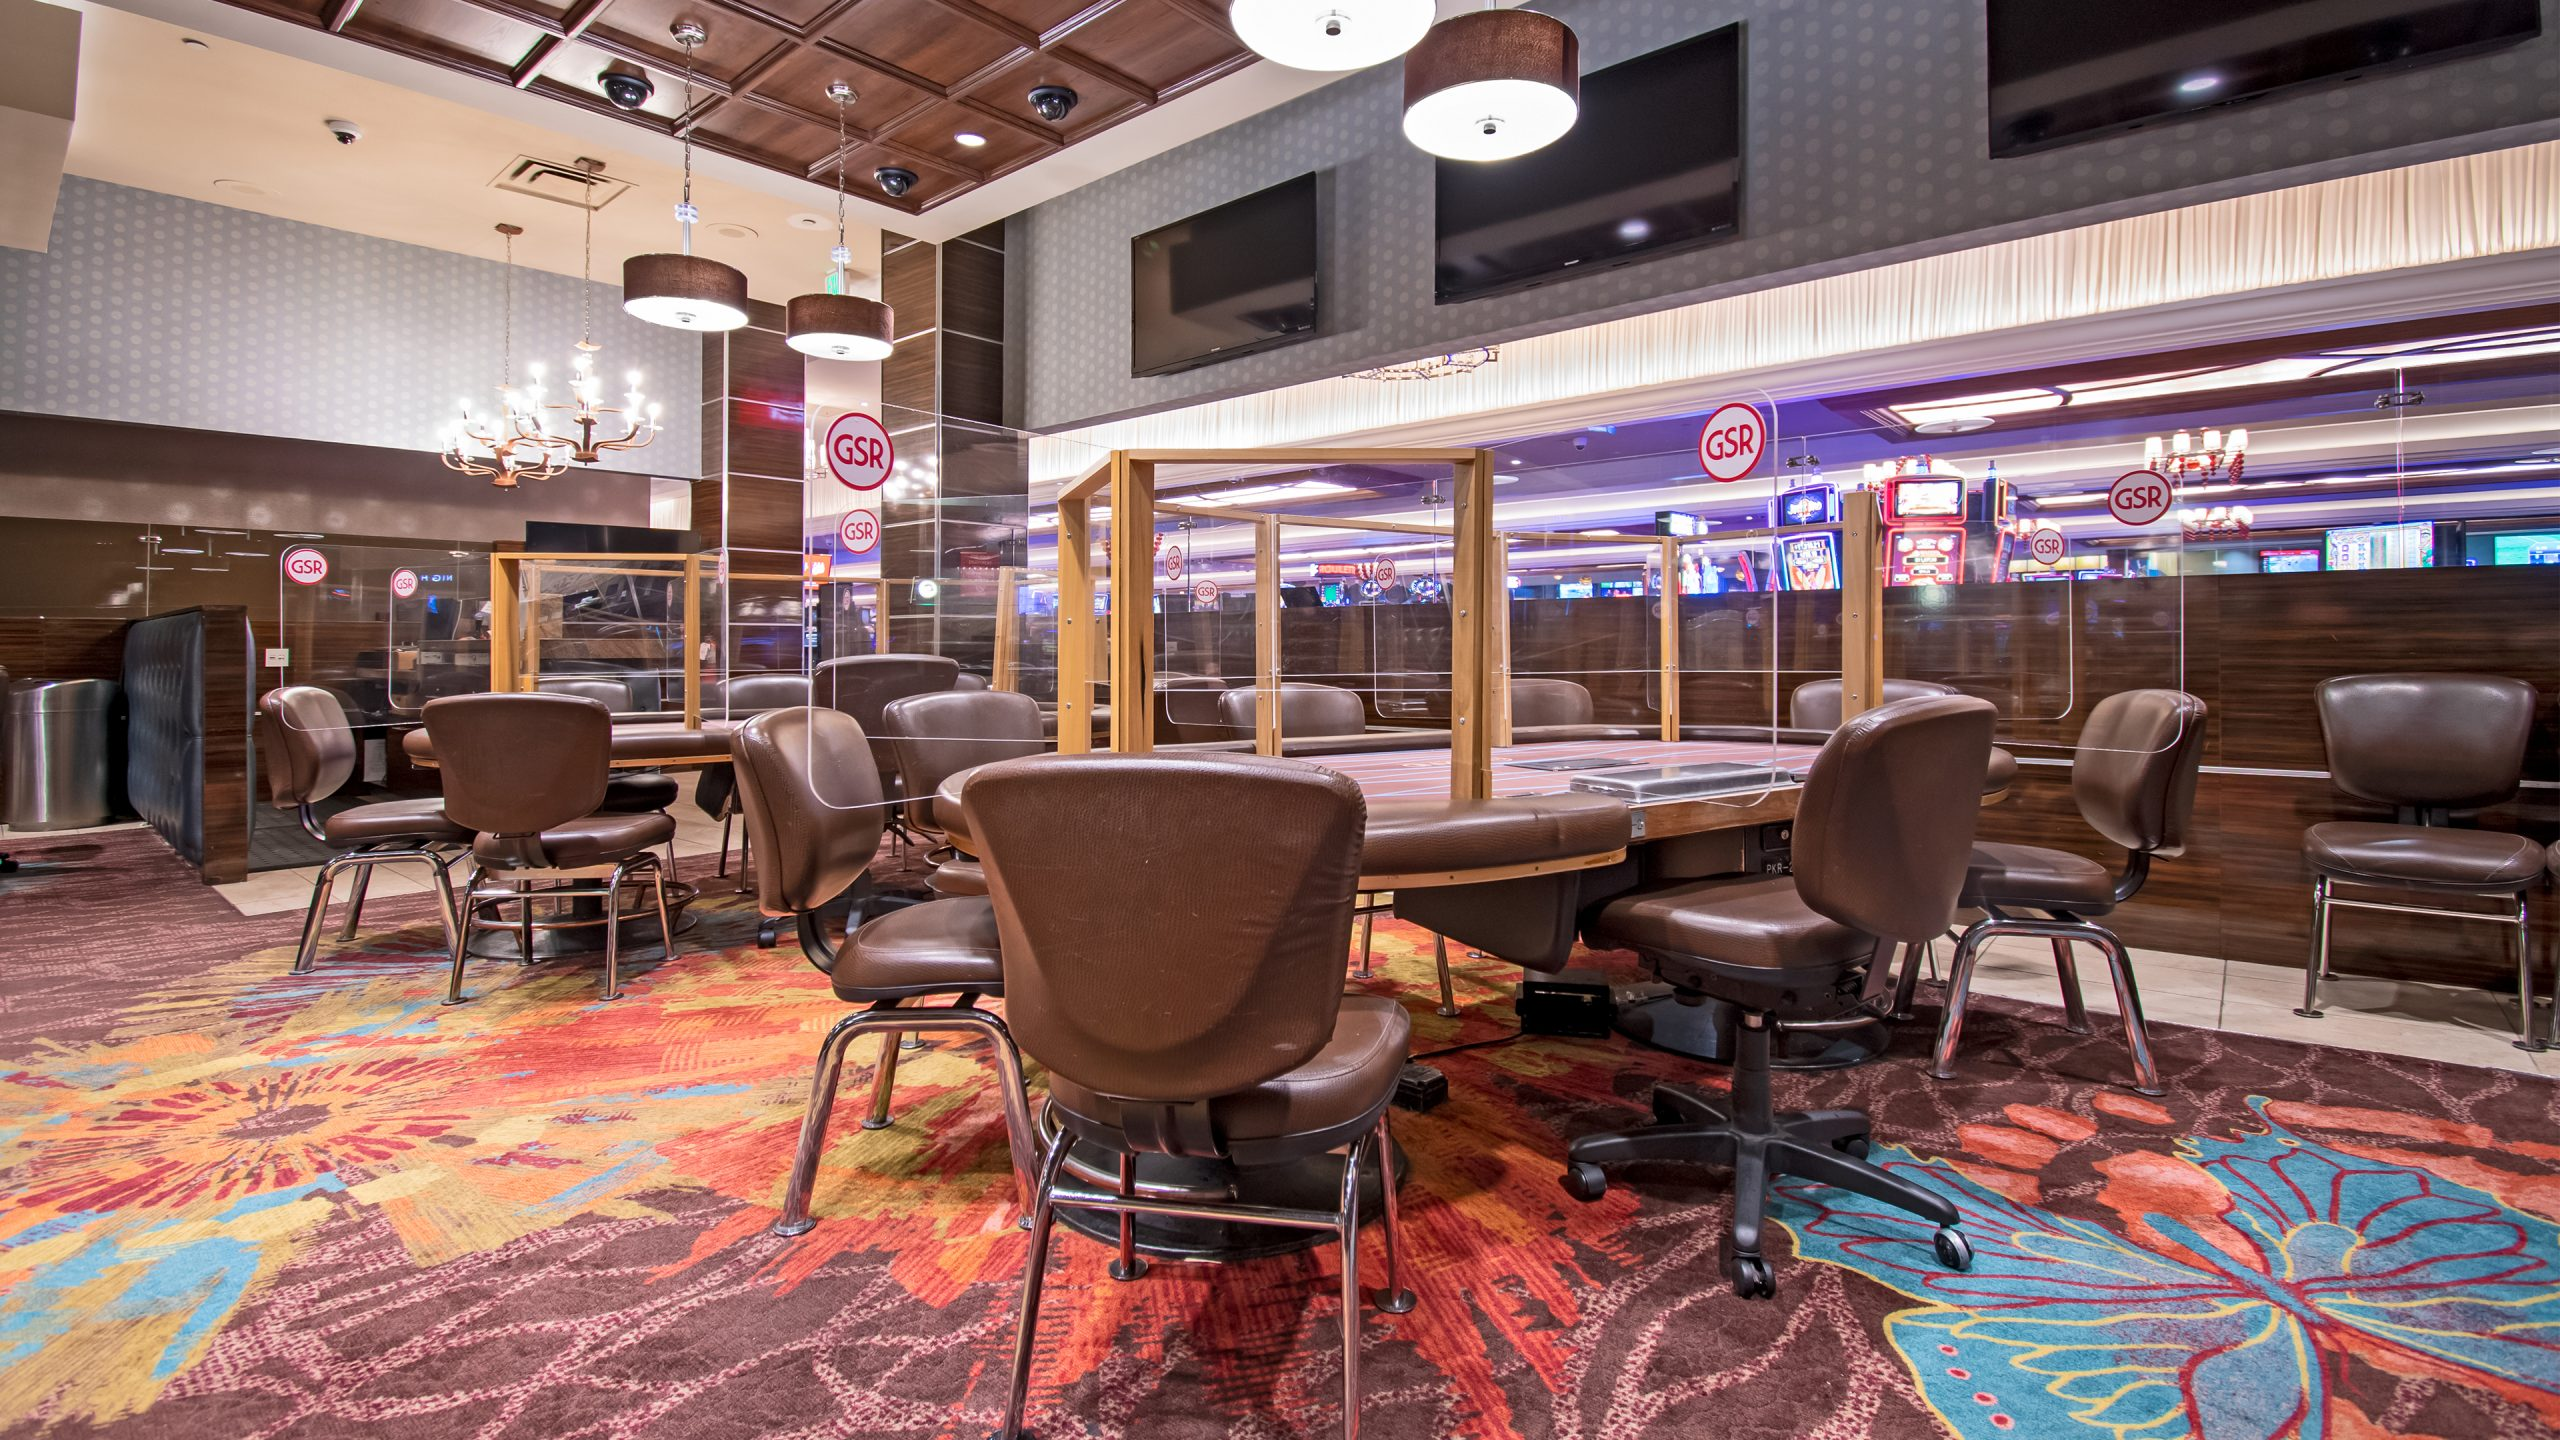 View of Poker Room Looking To Casino